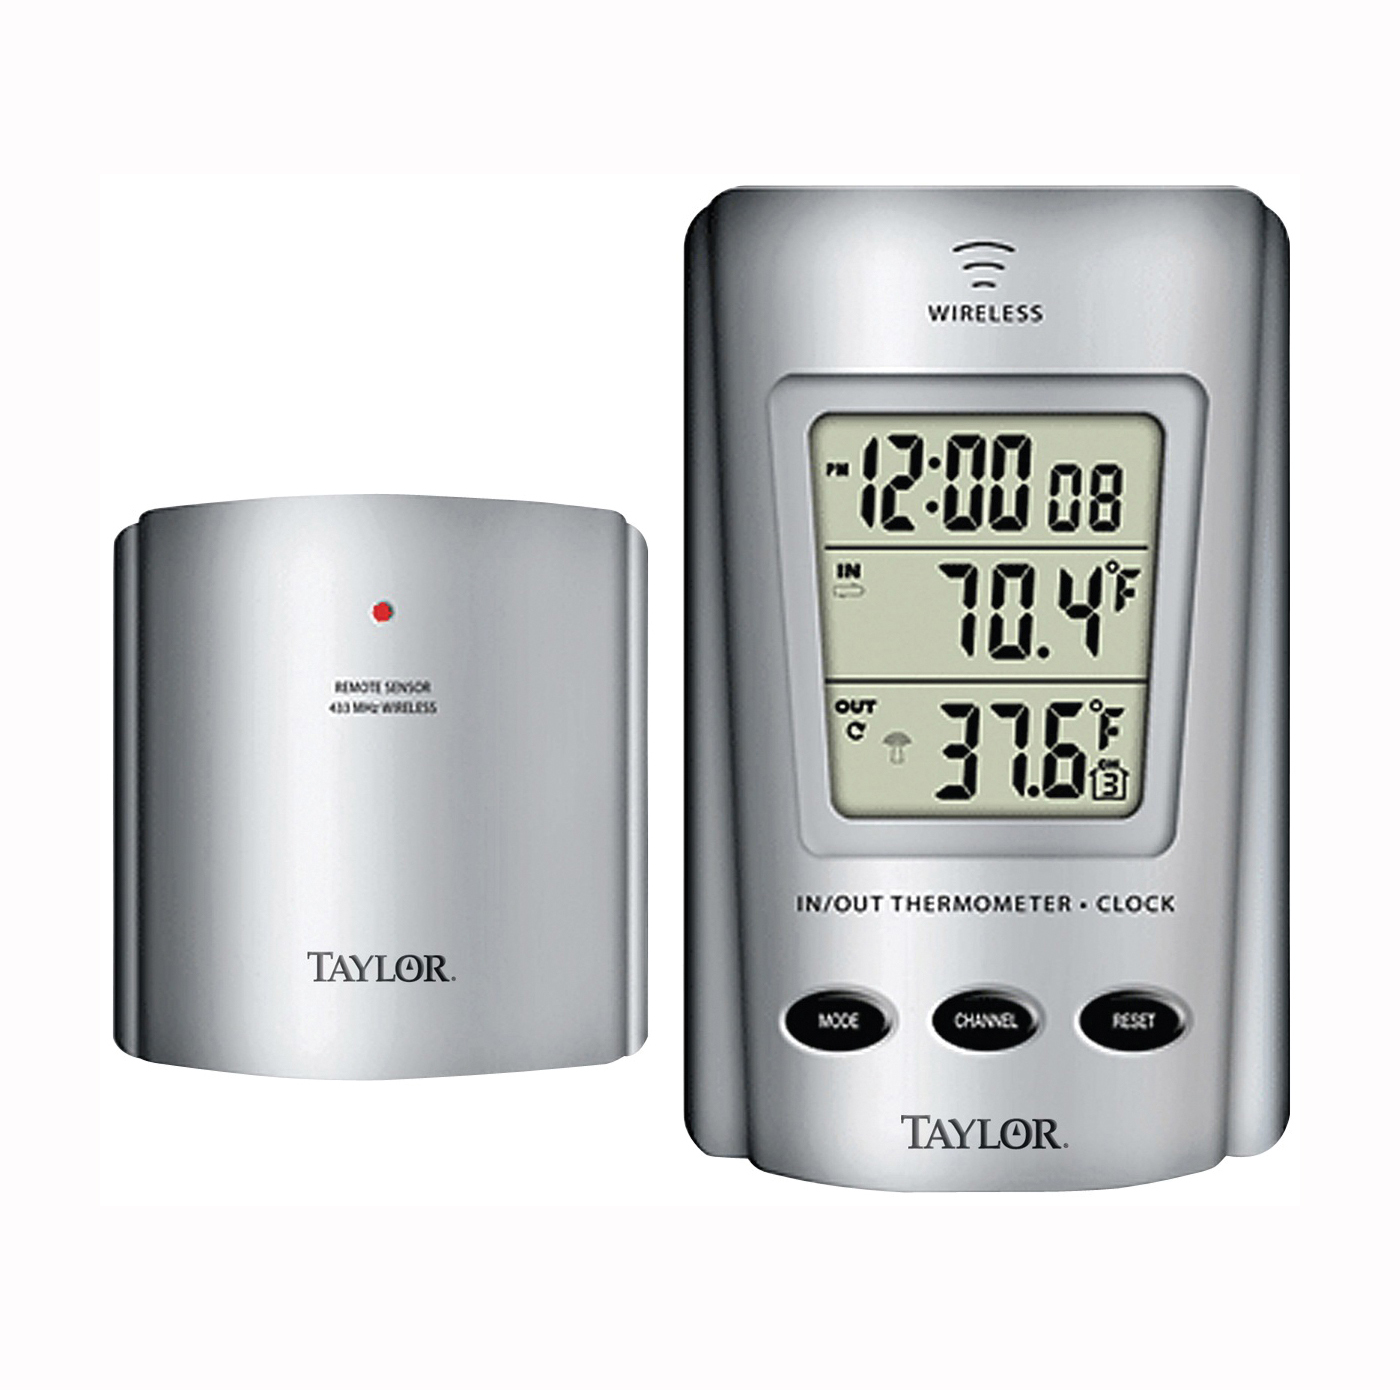 Picture of Taylor 1730 Wireless Thermometer, 32 to 122 deg F